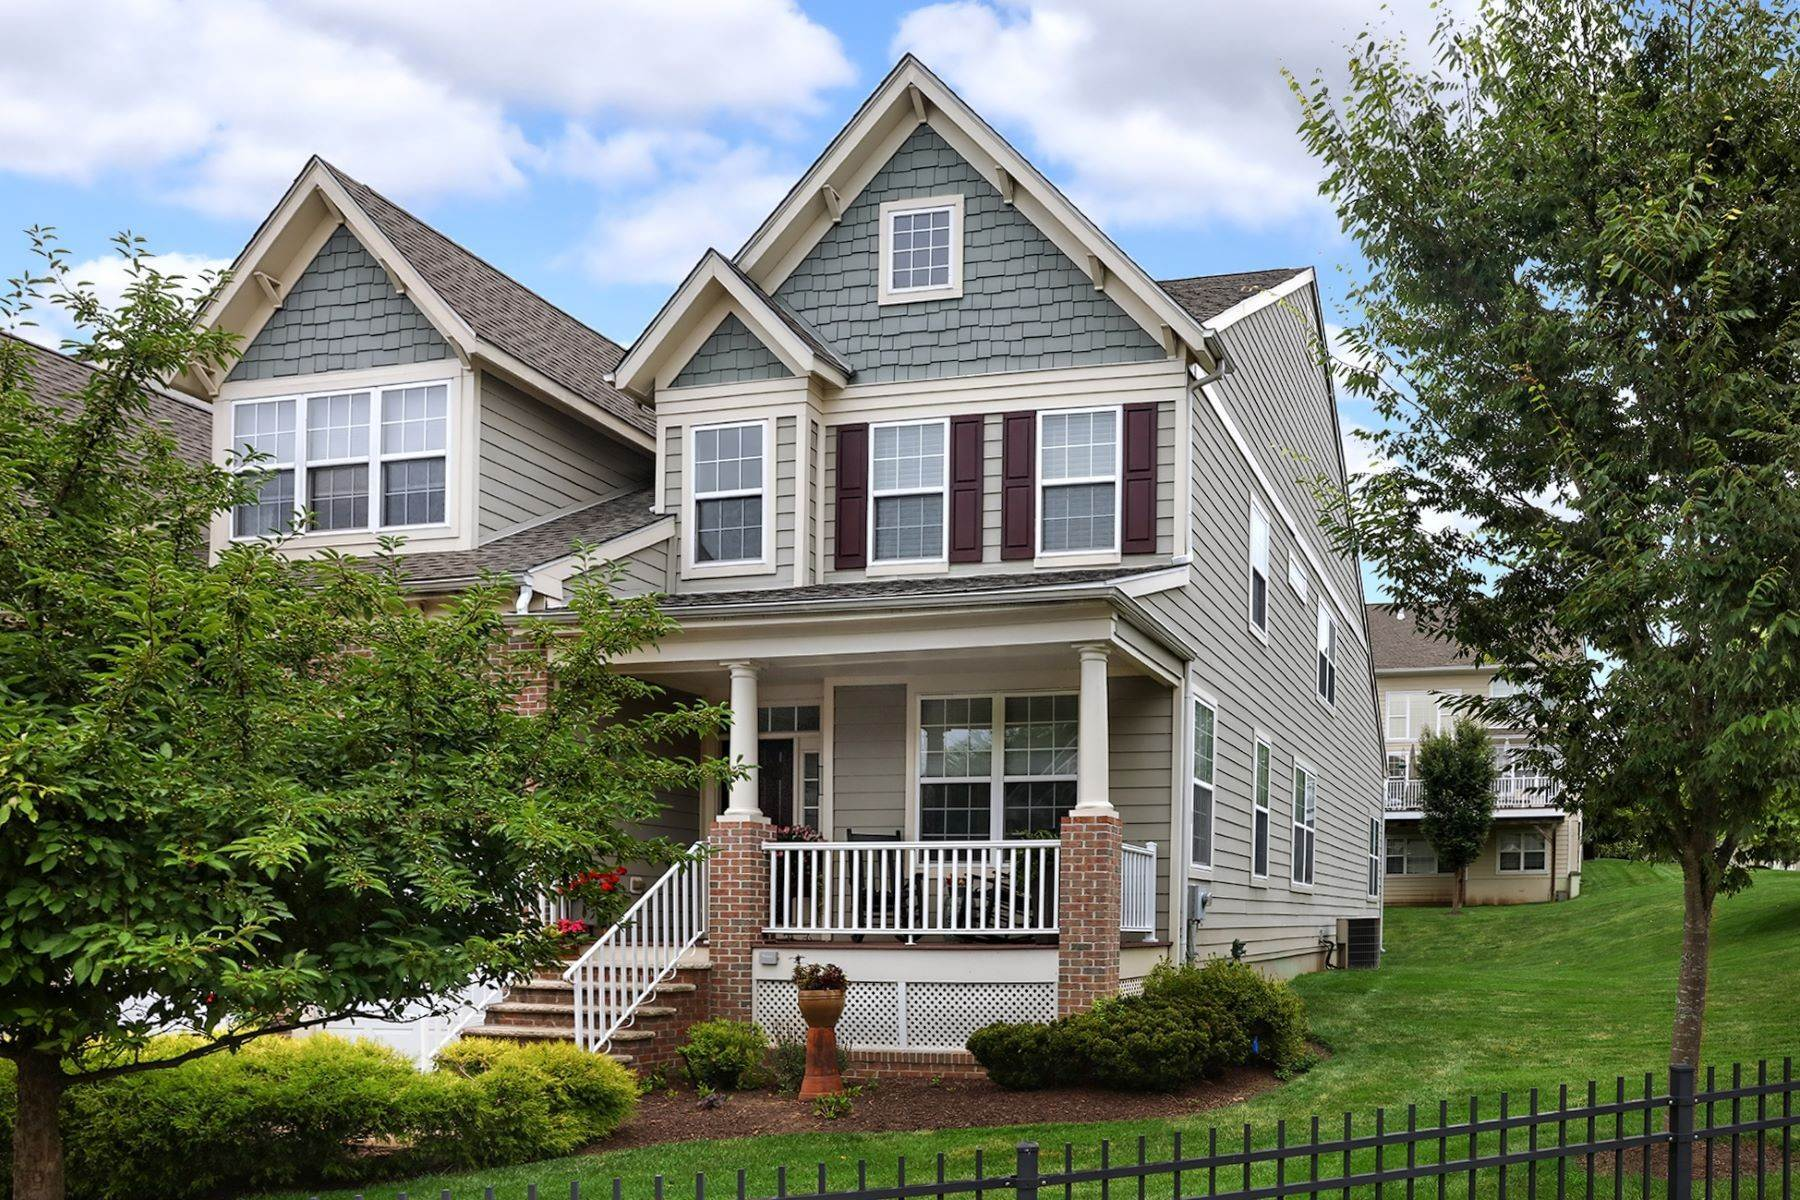 townhouses for Sale at Immaculate End Unit Livingston Model - Lambert's Hill 616 Heath Court, Lambertville, New Jersey 08530 United States